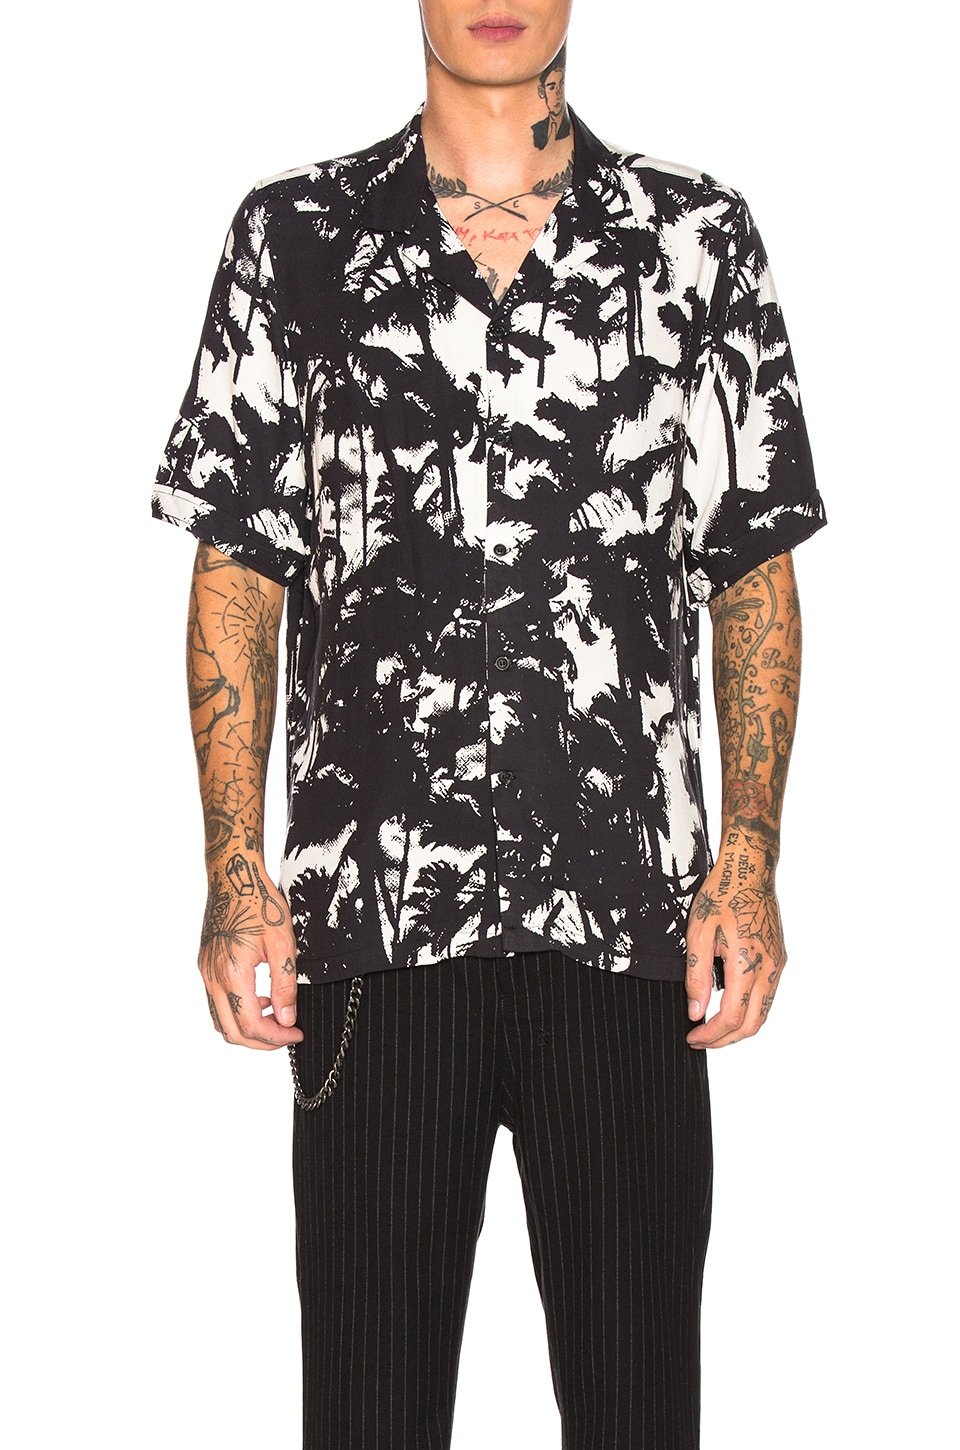 Ksubi Troppo Resort Shirt in Assorted